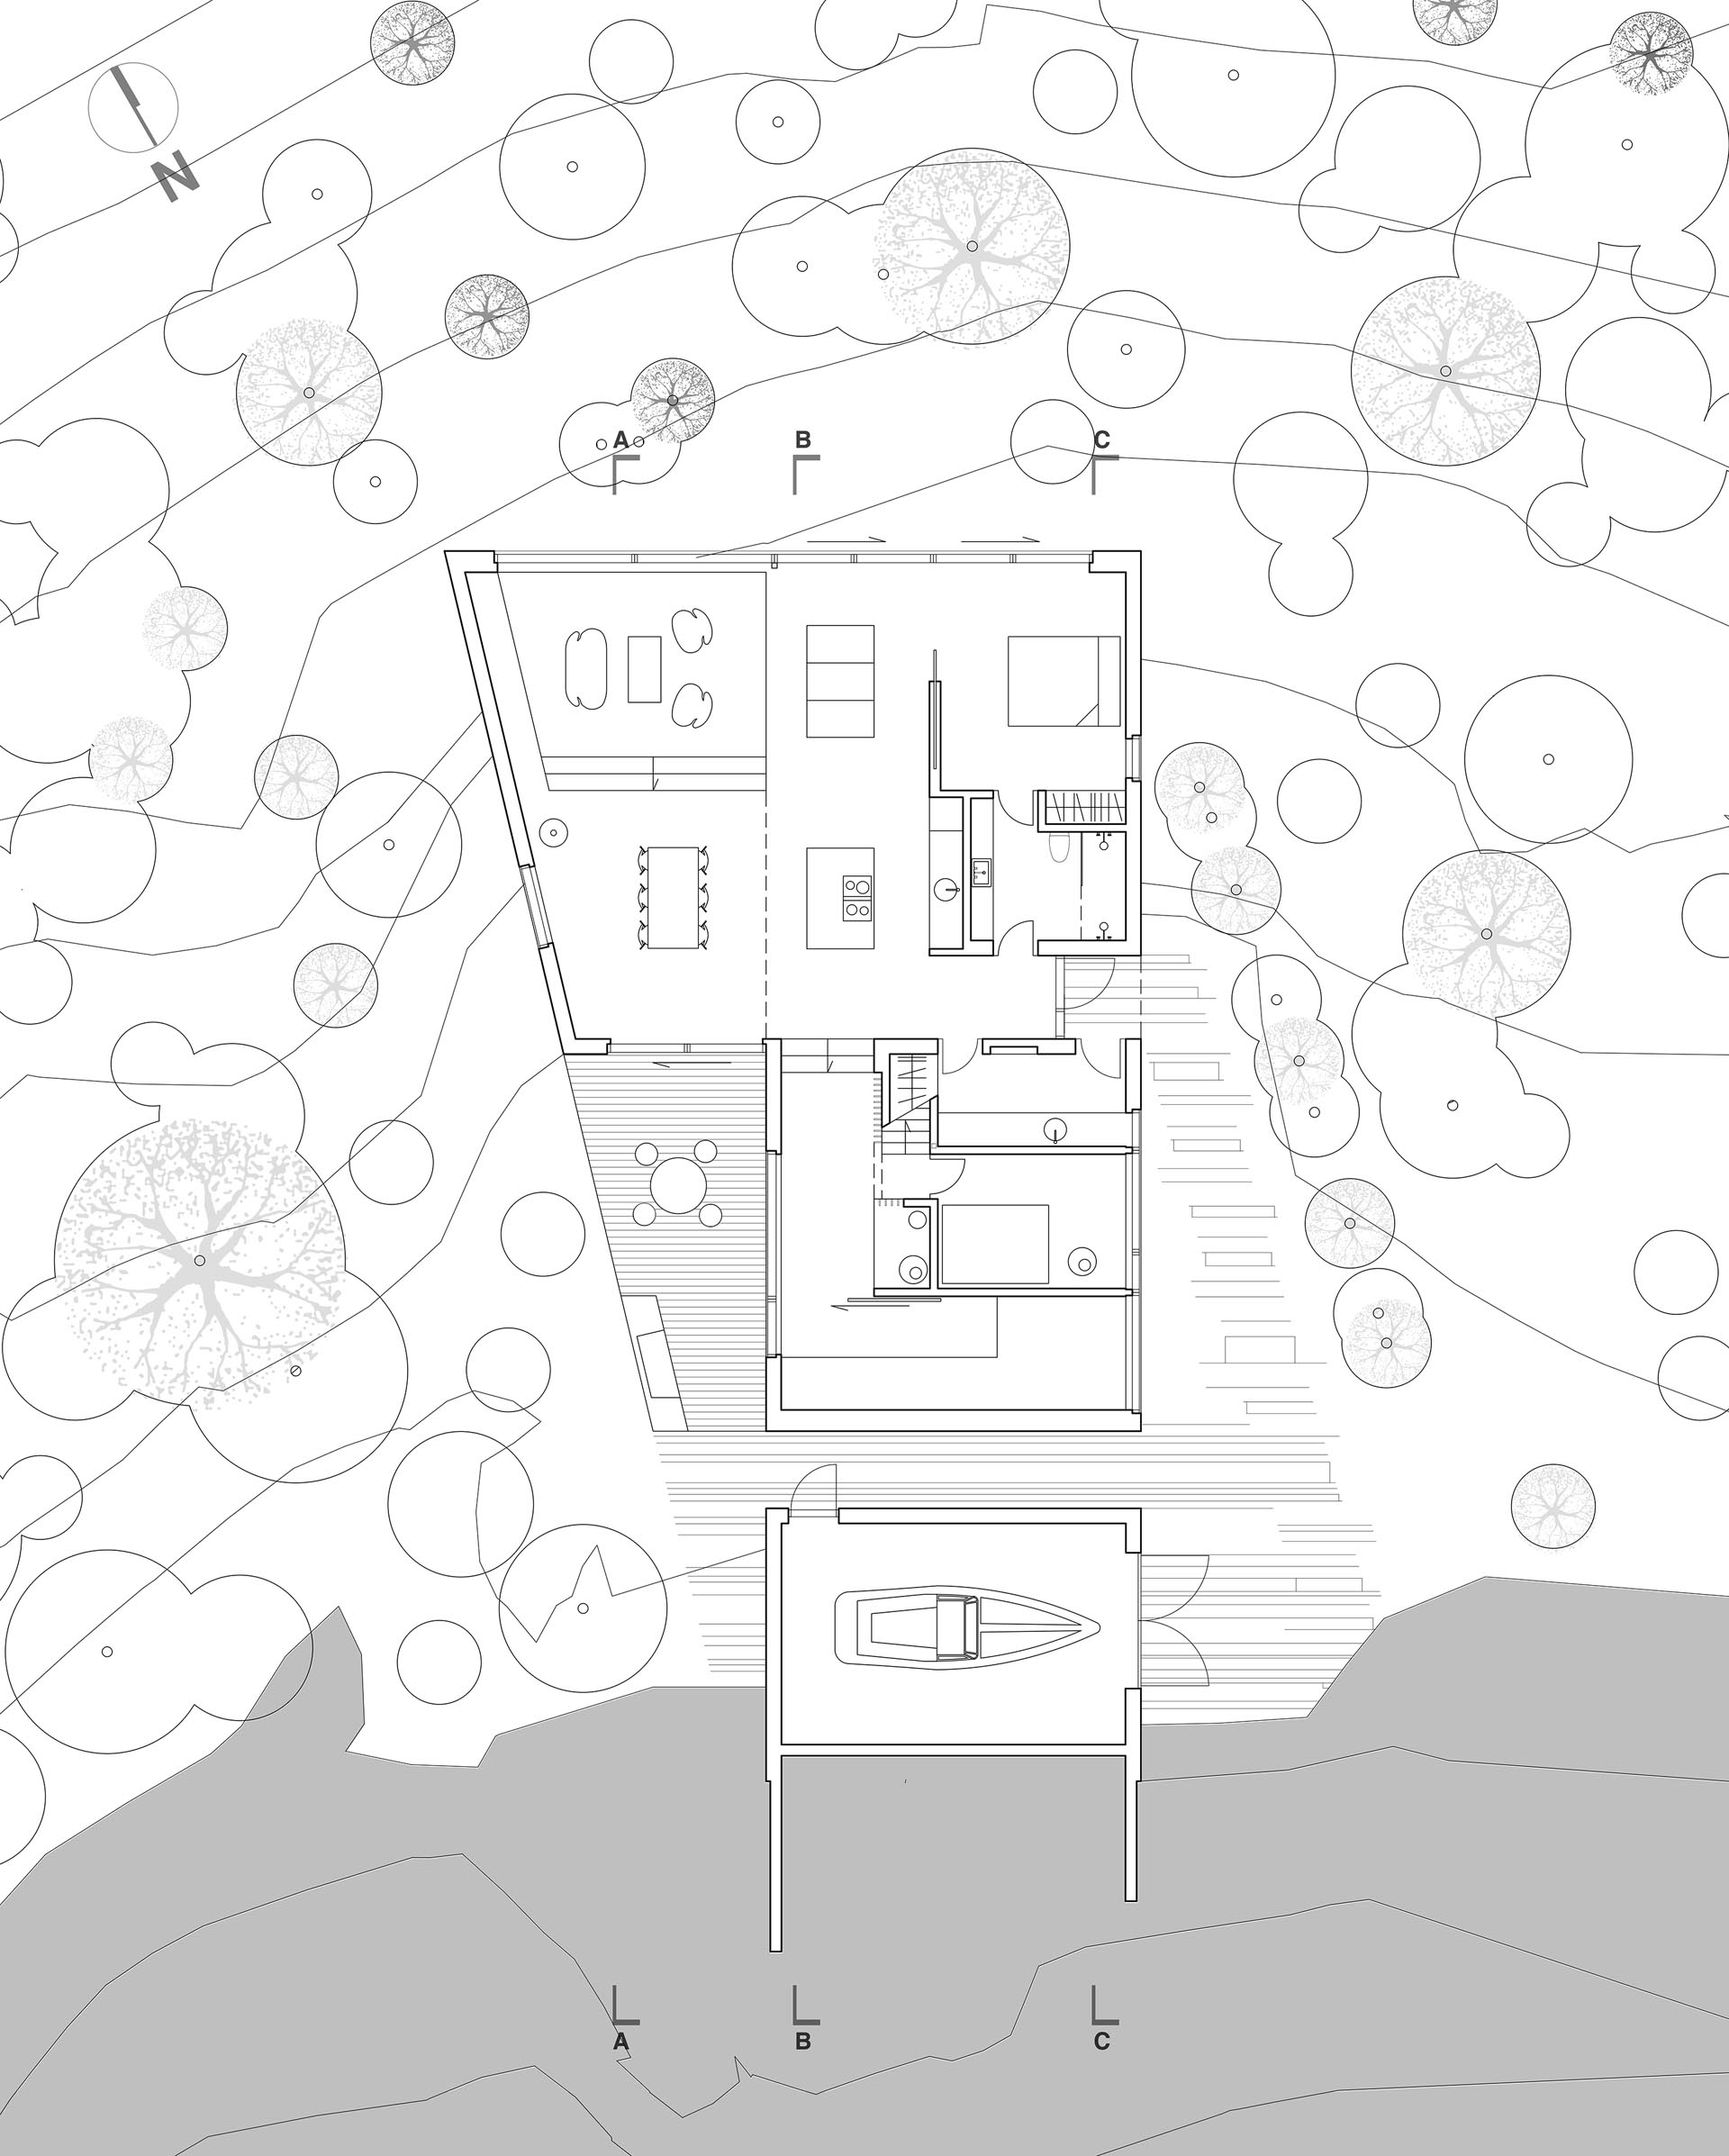 The floor plan of a modern home.